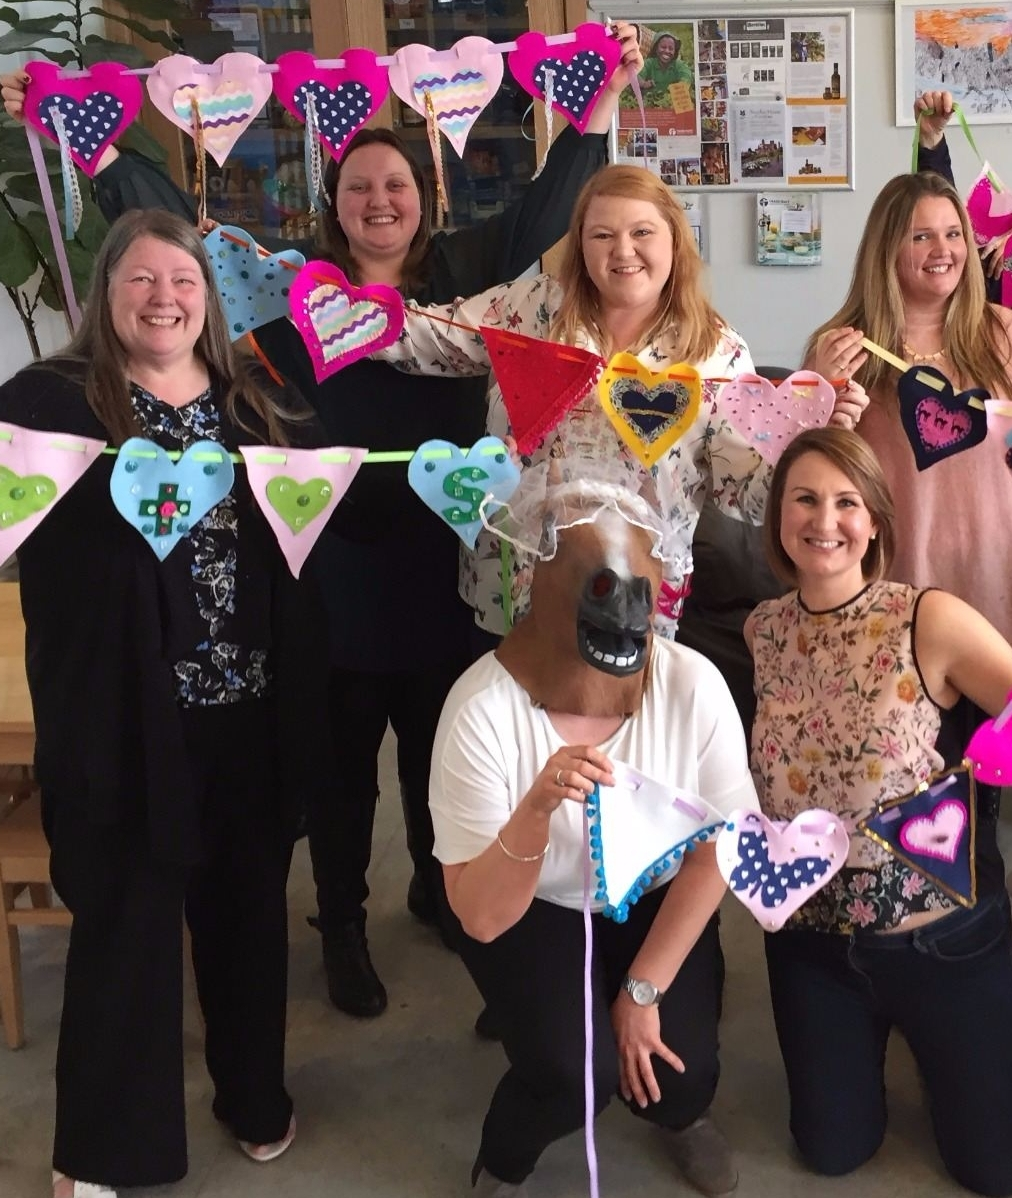 hen party bunting felt crafty brighton hove sussex